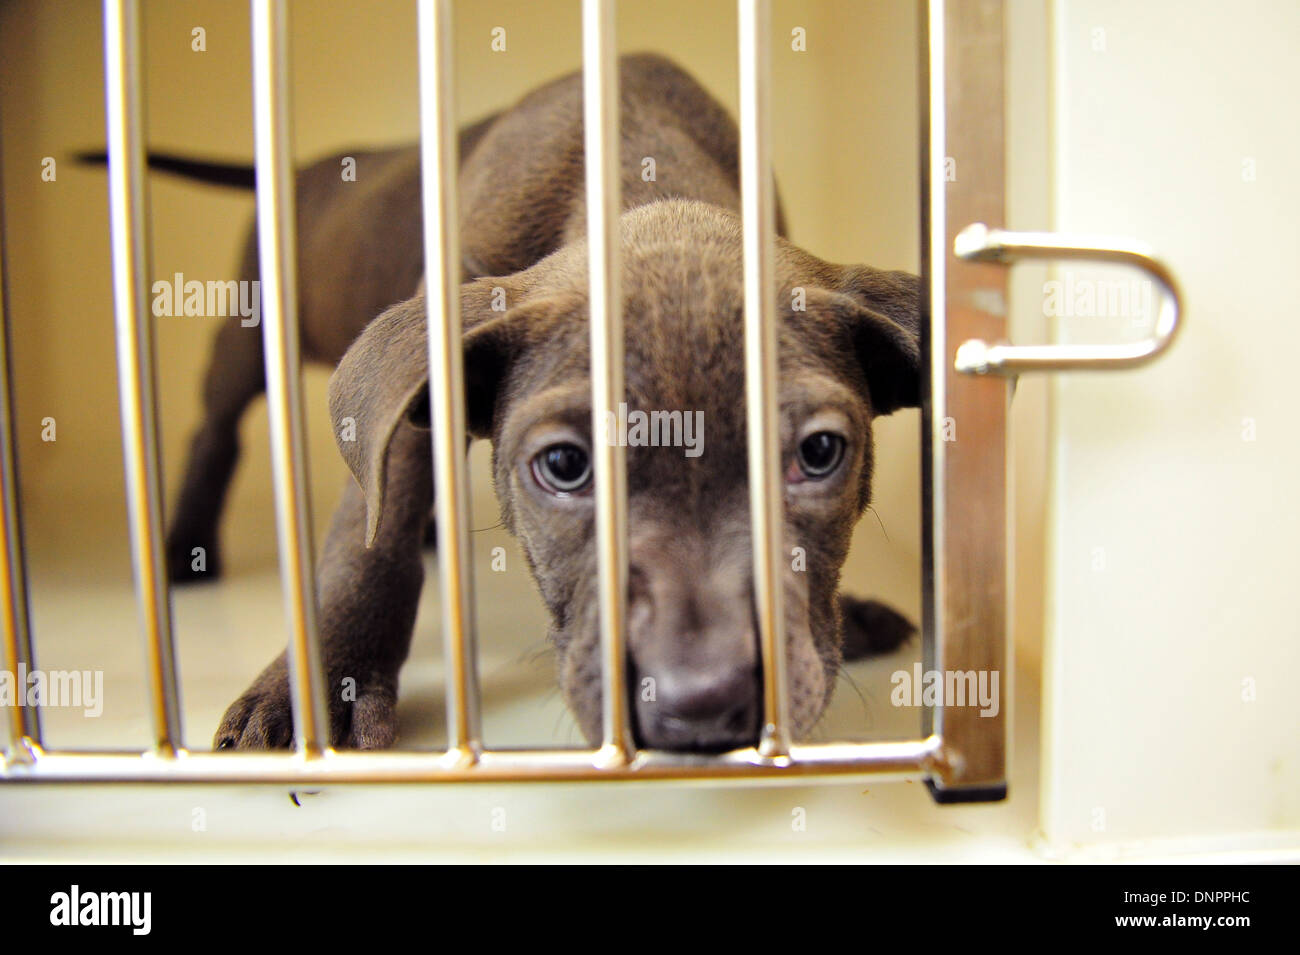 A puppy in Cardiff Dogs Home, which sees an increase in intake after the Christmas period. - Stock Image